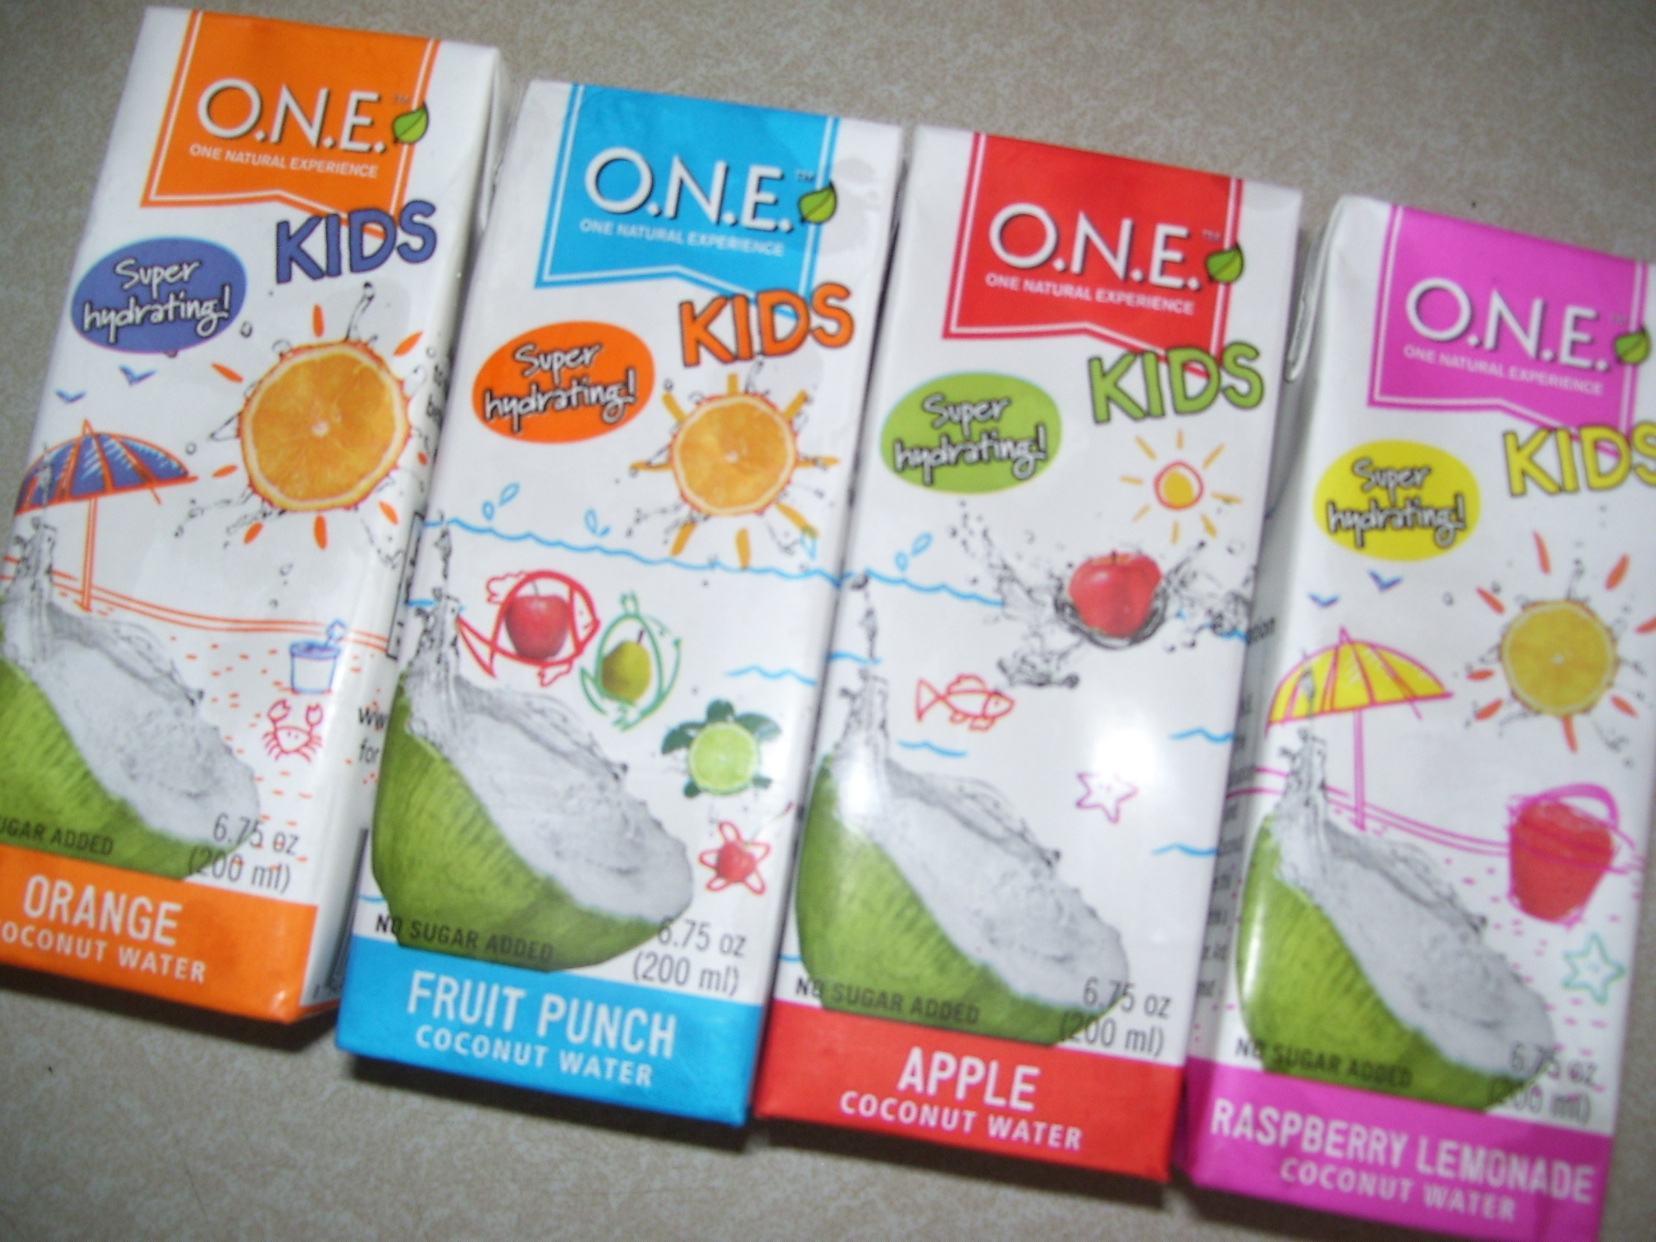 O.N.E. Kids Coconut Water – Keeping My Kids Happy and Hydrated